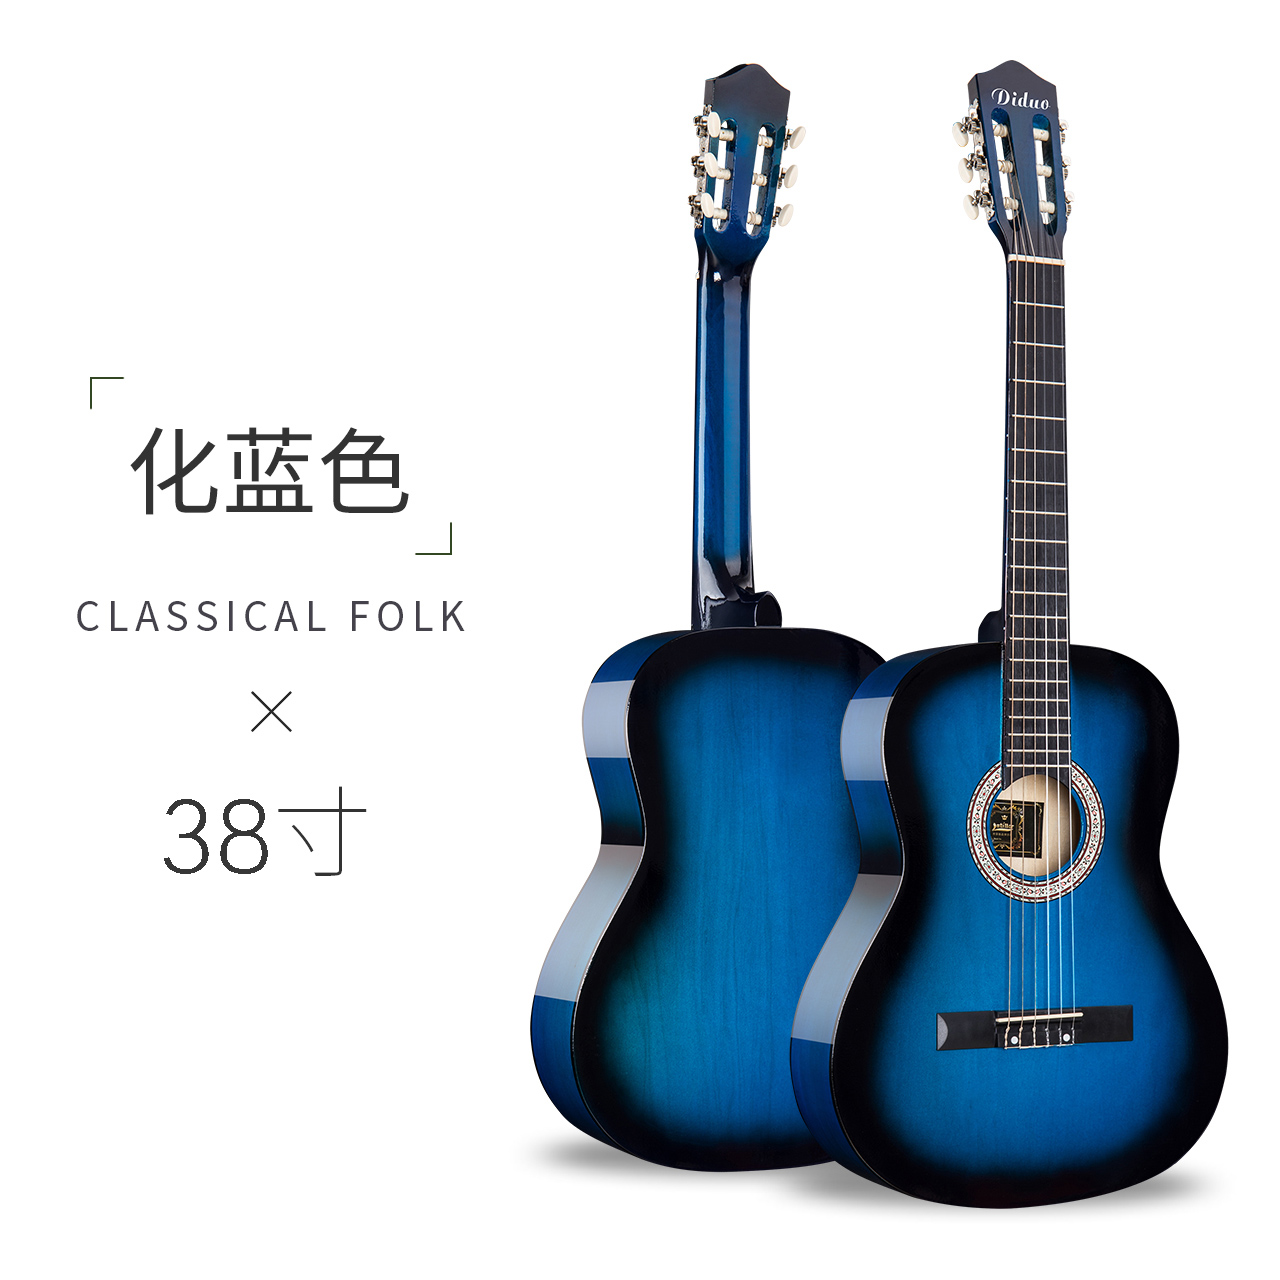 38 INCH CLASSICAL BLUE GIFT SPREE